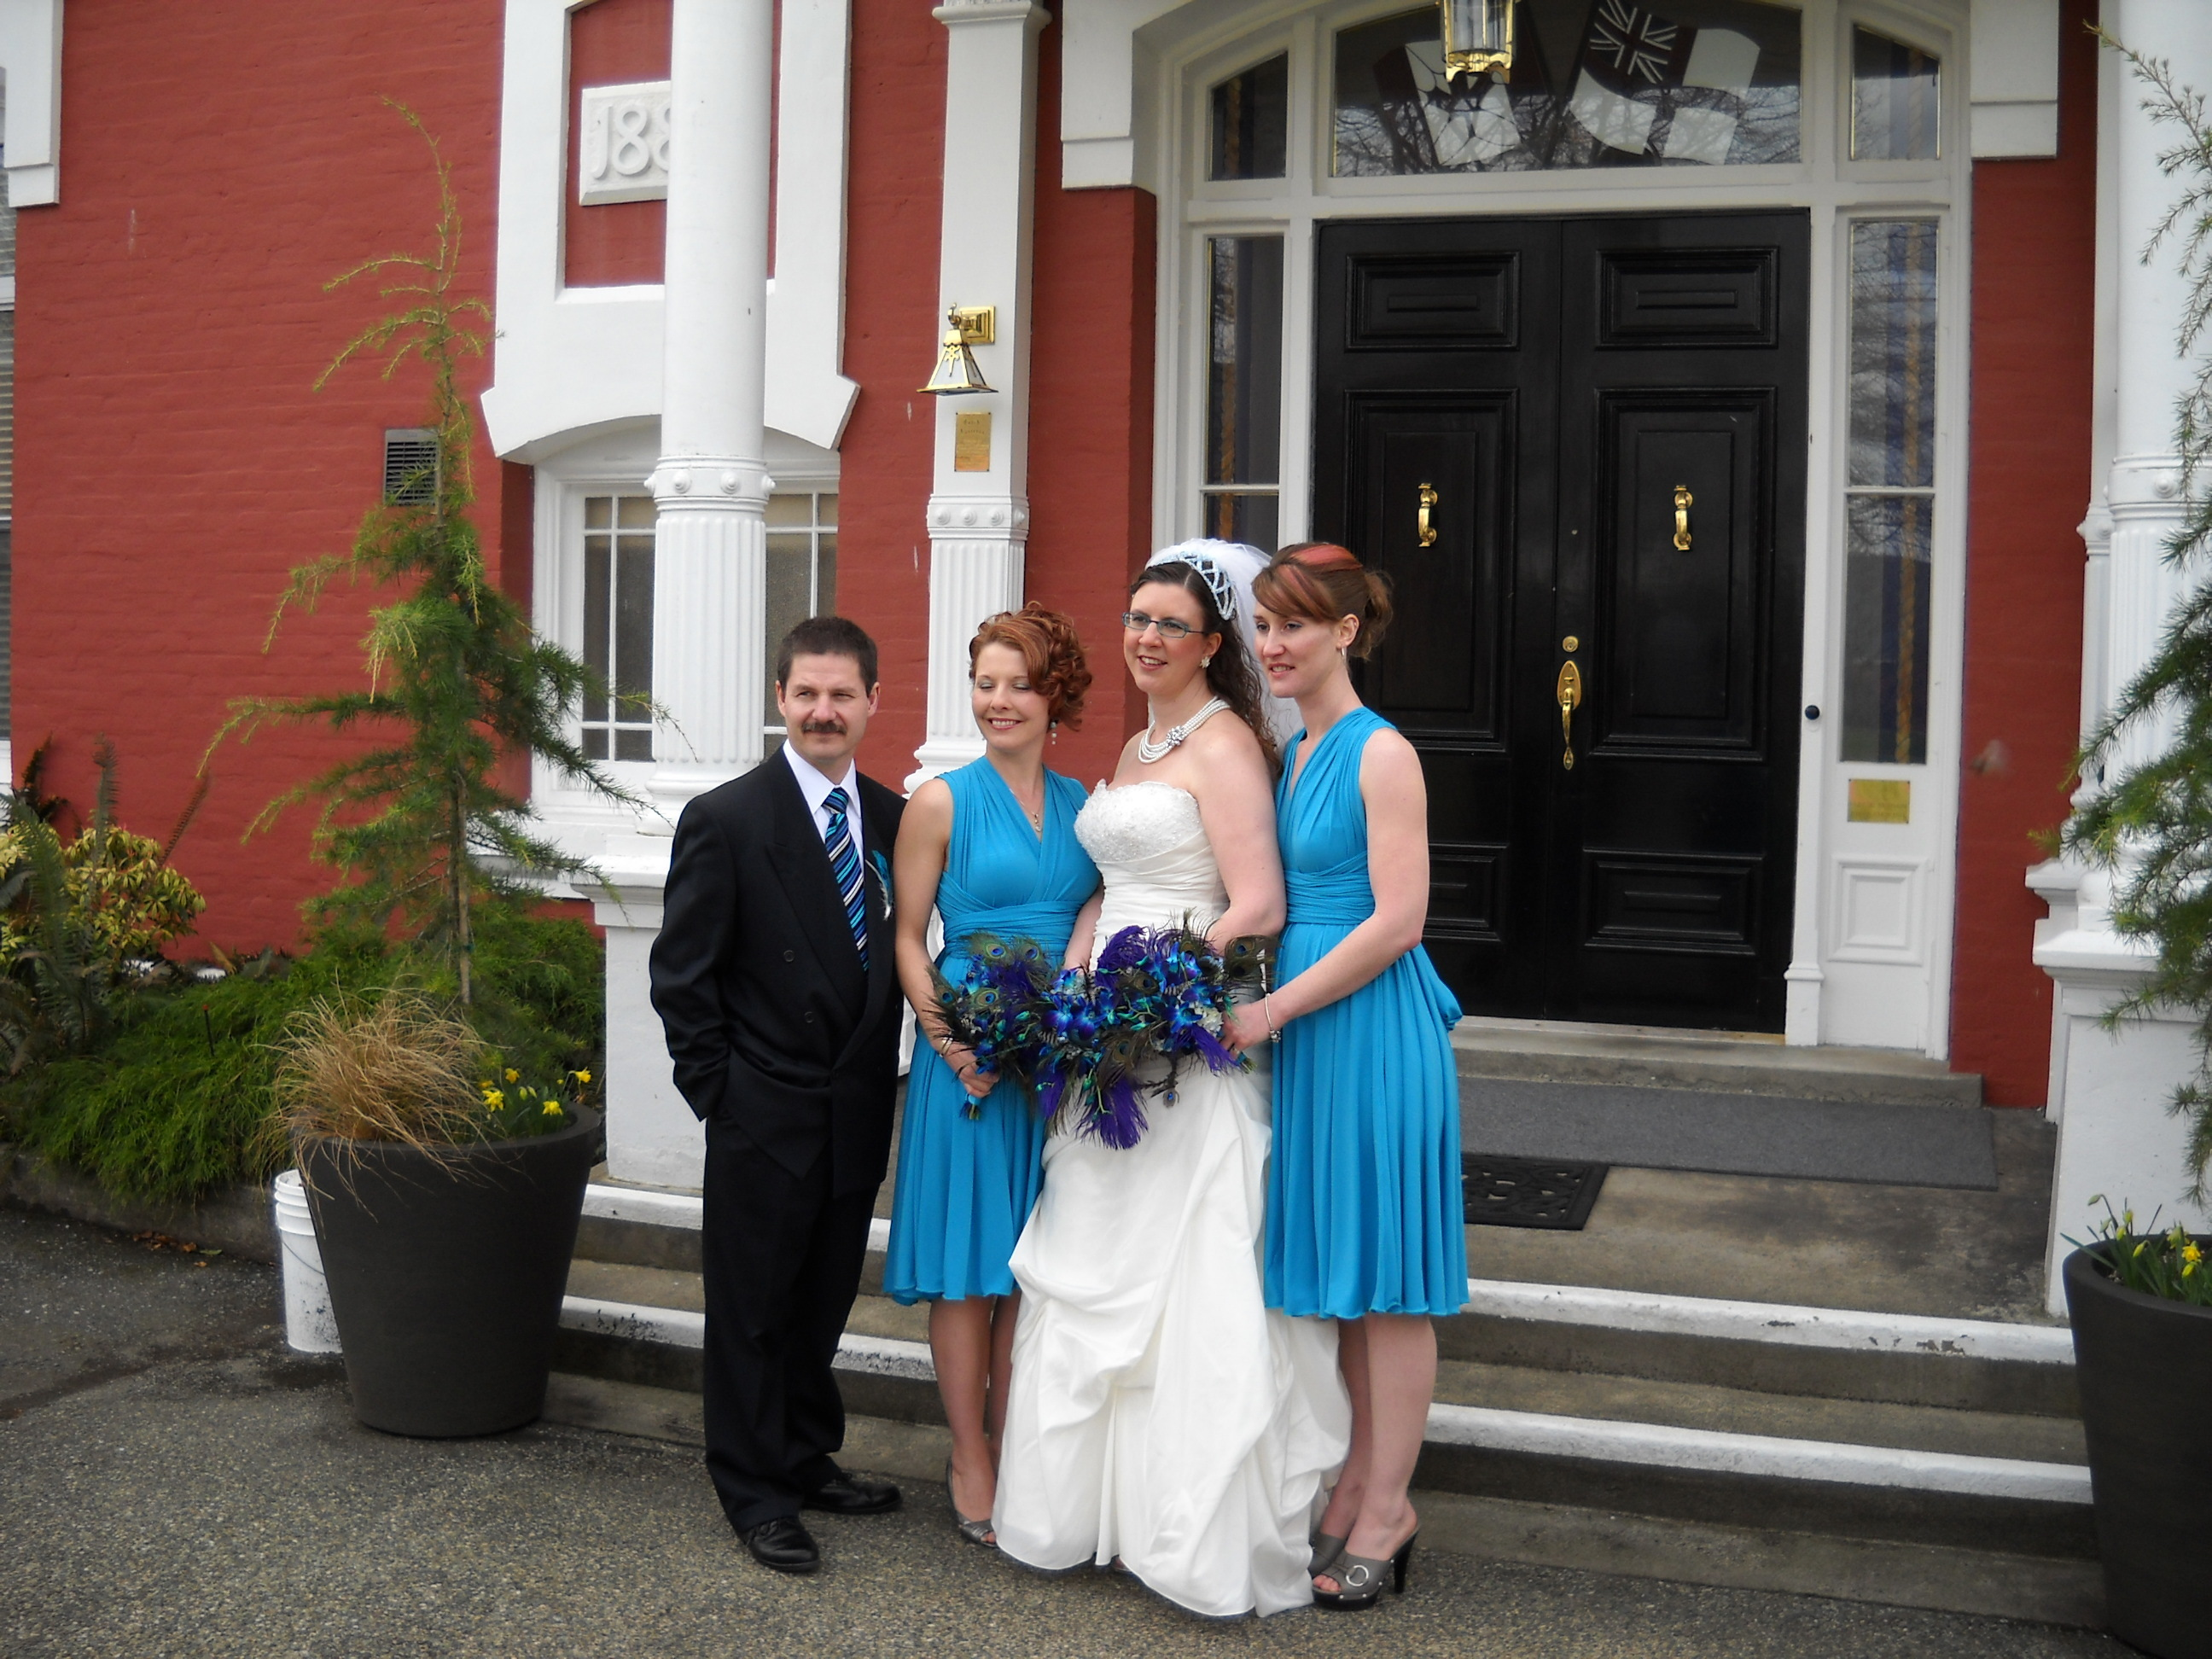 Bride, Portraits, Groom, Wedding, Party, Bridal, House, Claytonandshauna, Admirals, Dockyards